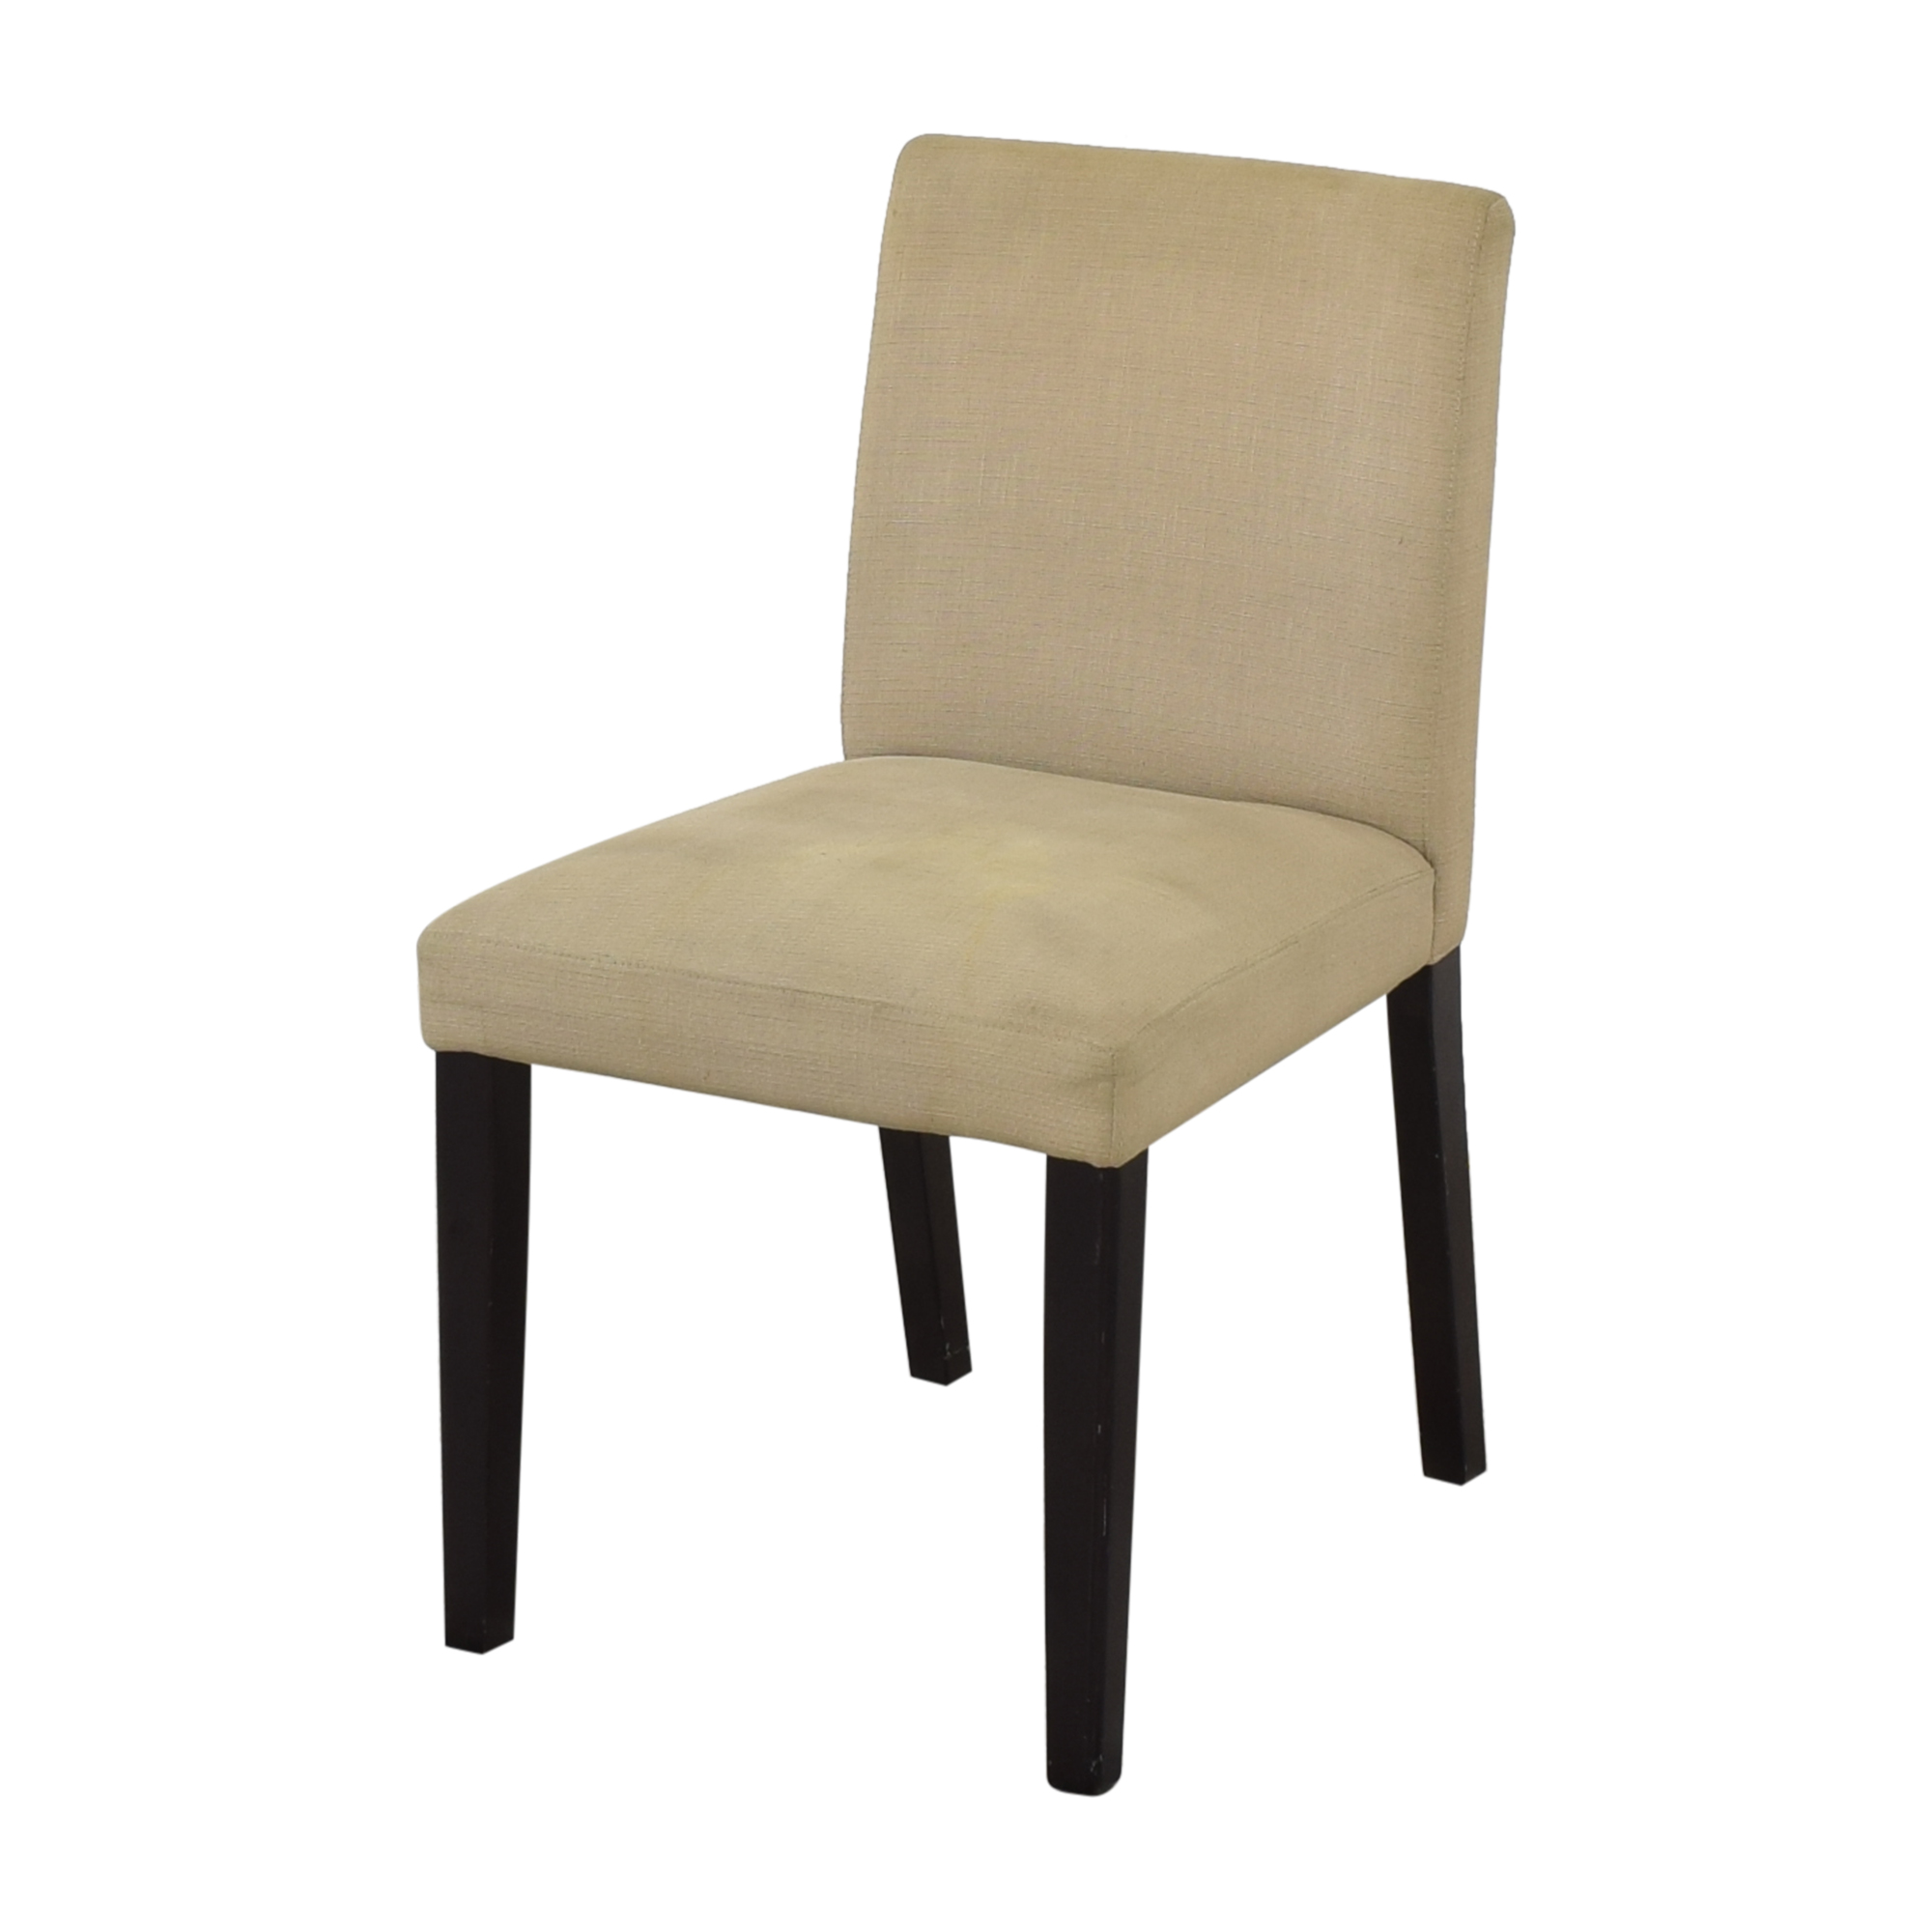 West Elm West Elm Porter Dining Chairs price